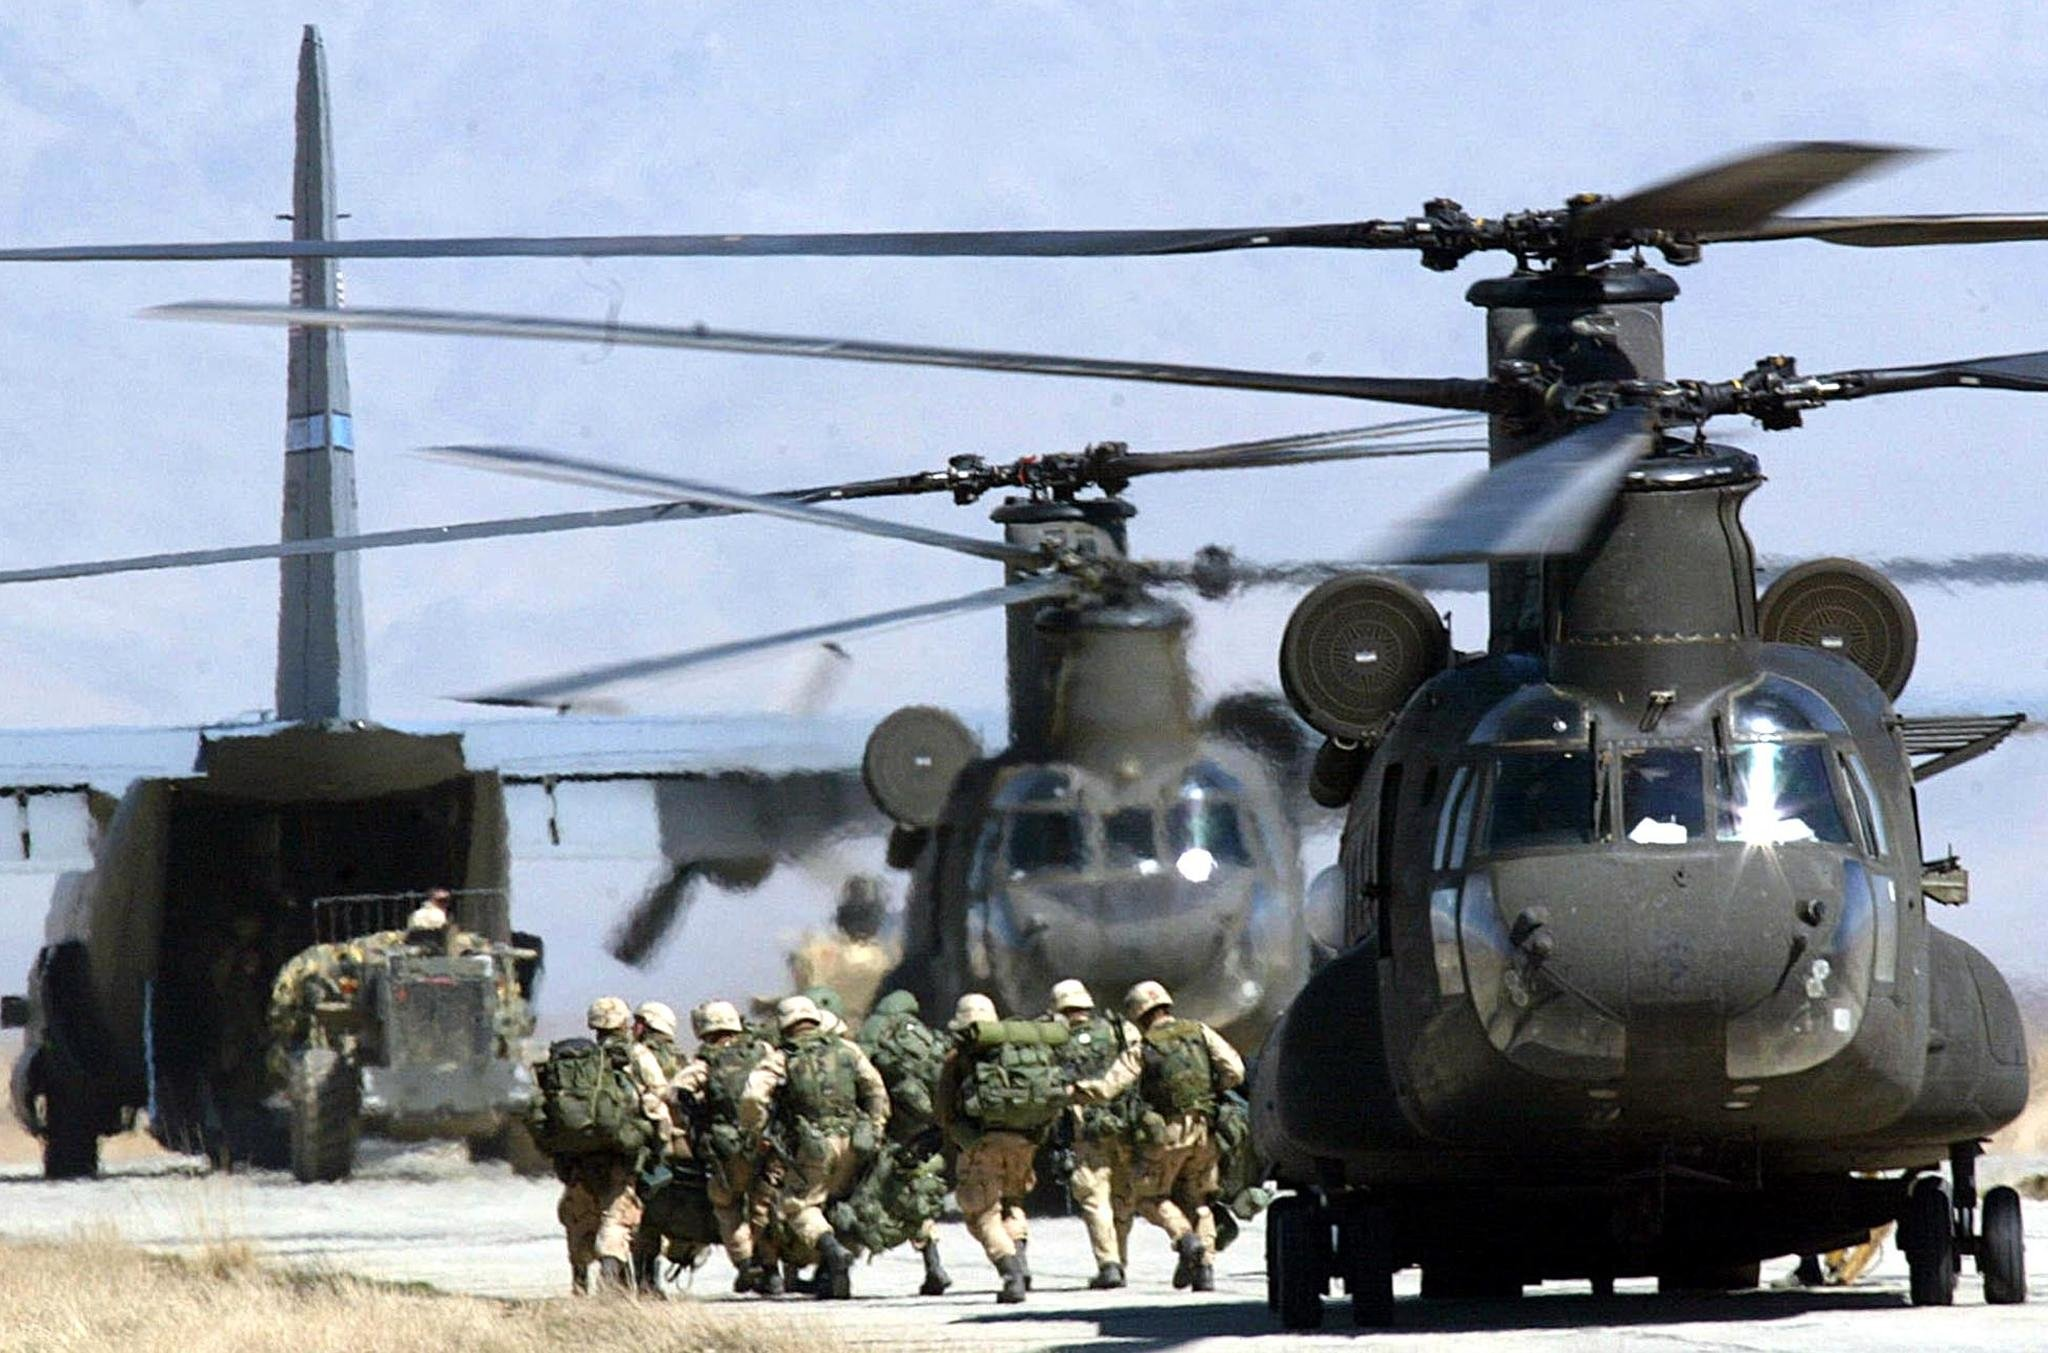 U.S. soldiers disembark from a CH-46 Chinook helicopter at Bagram Air Base, Bagram, Afghanistan, March 12, 2002. (AFP Photo)